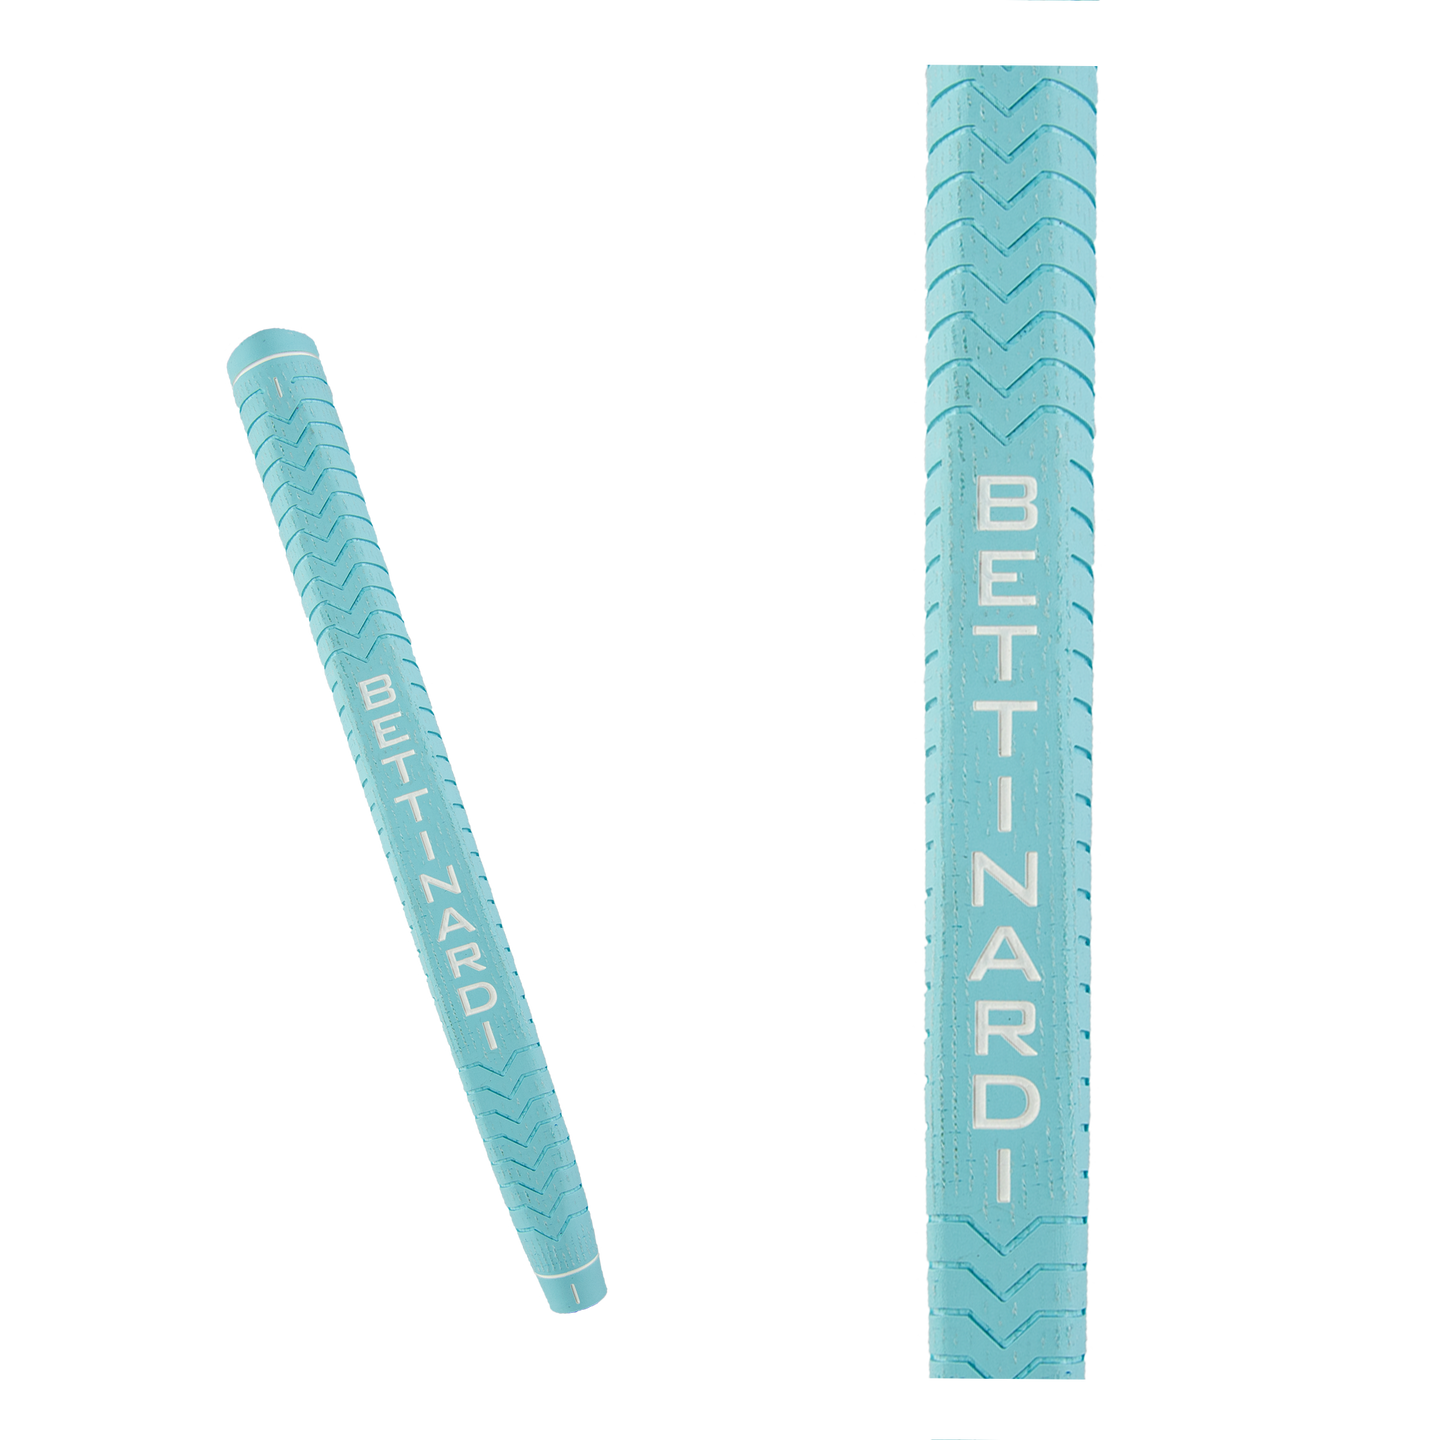 Aqua Bettinardi Deep Etched Putter Grip (Standard)